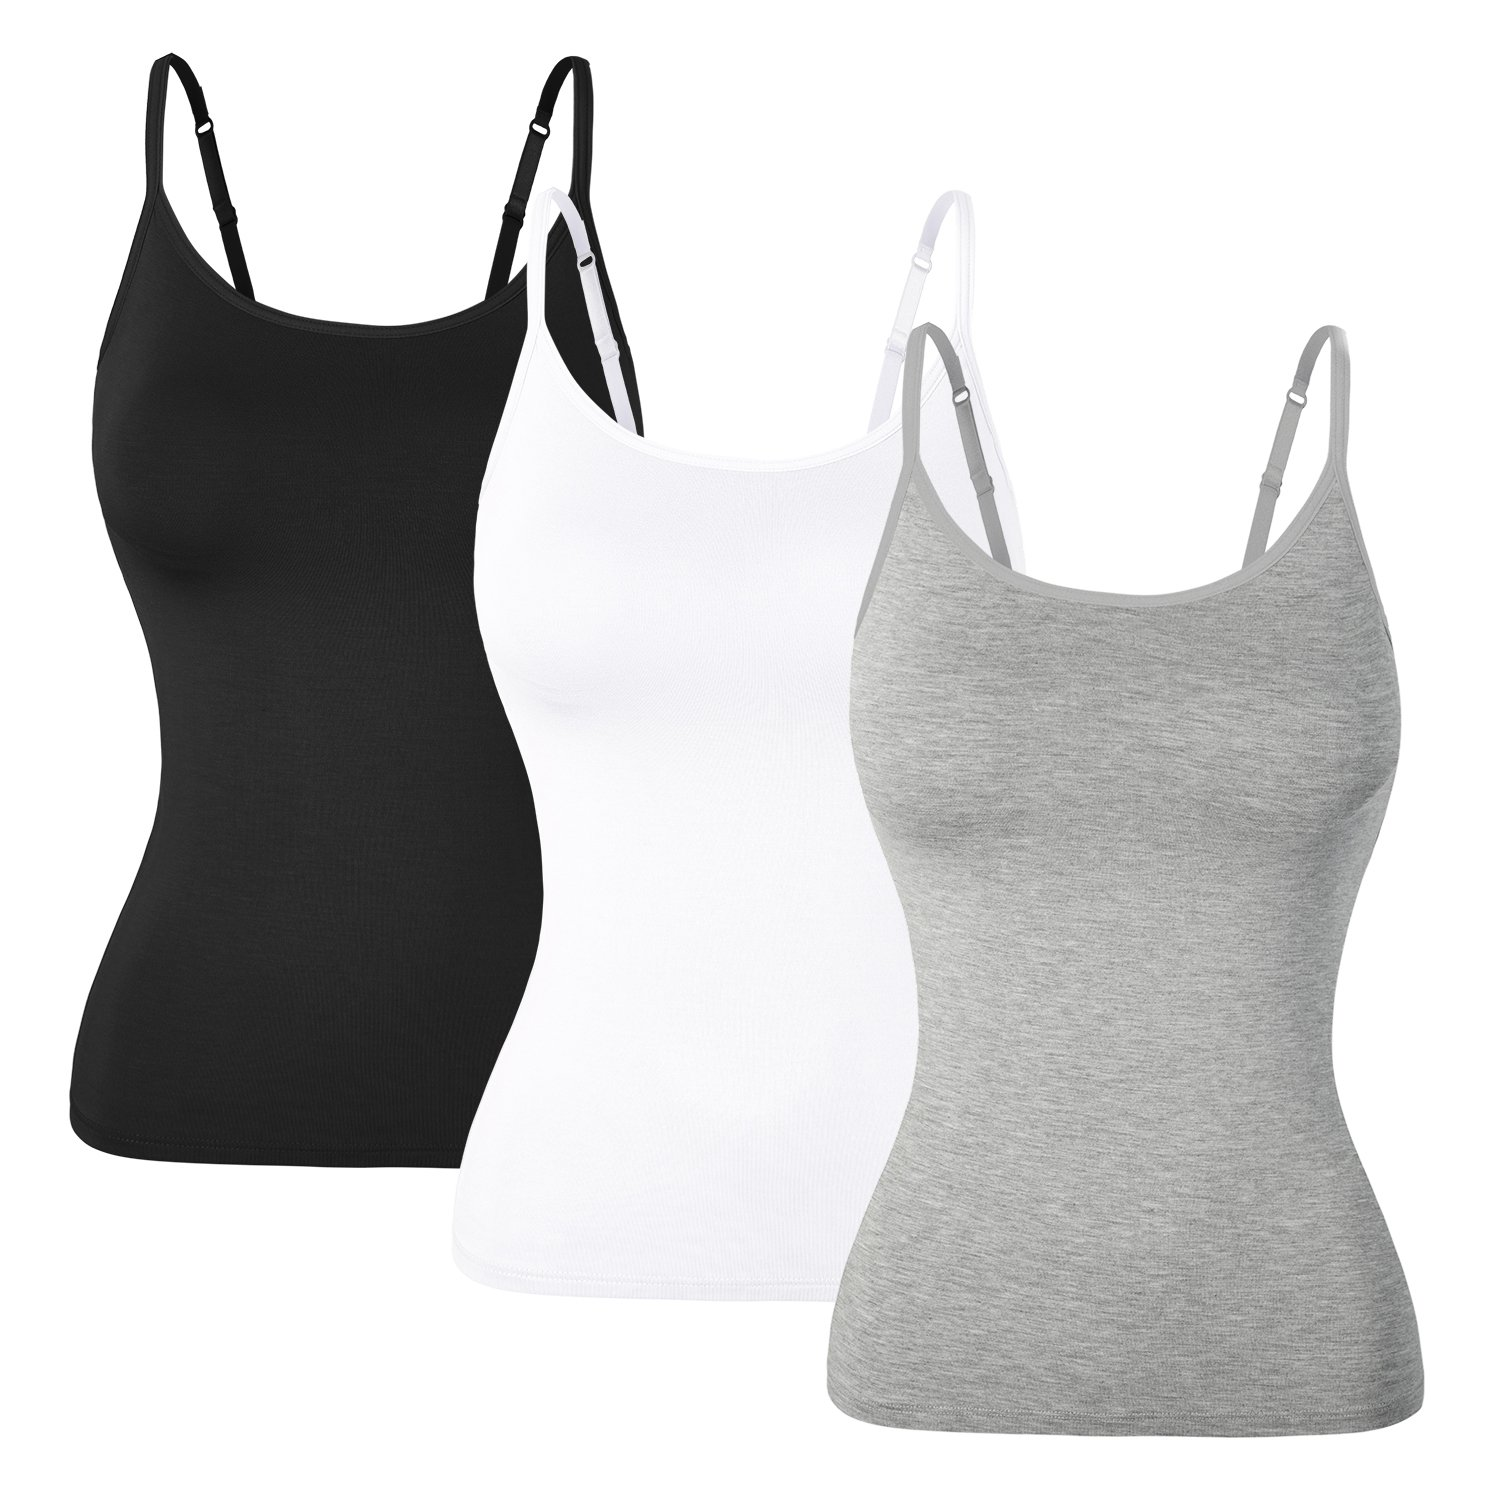 DYLH Women Stretch Tank Top Built-in Shelf Bra Cami Vest Set 3PACK by DYLH (Image #2)